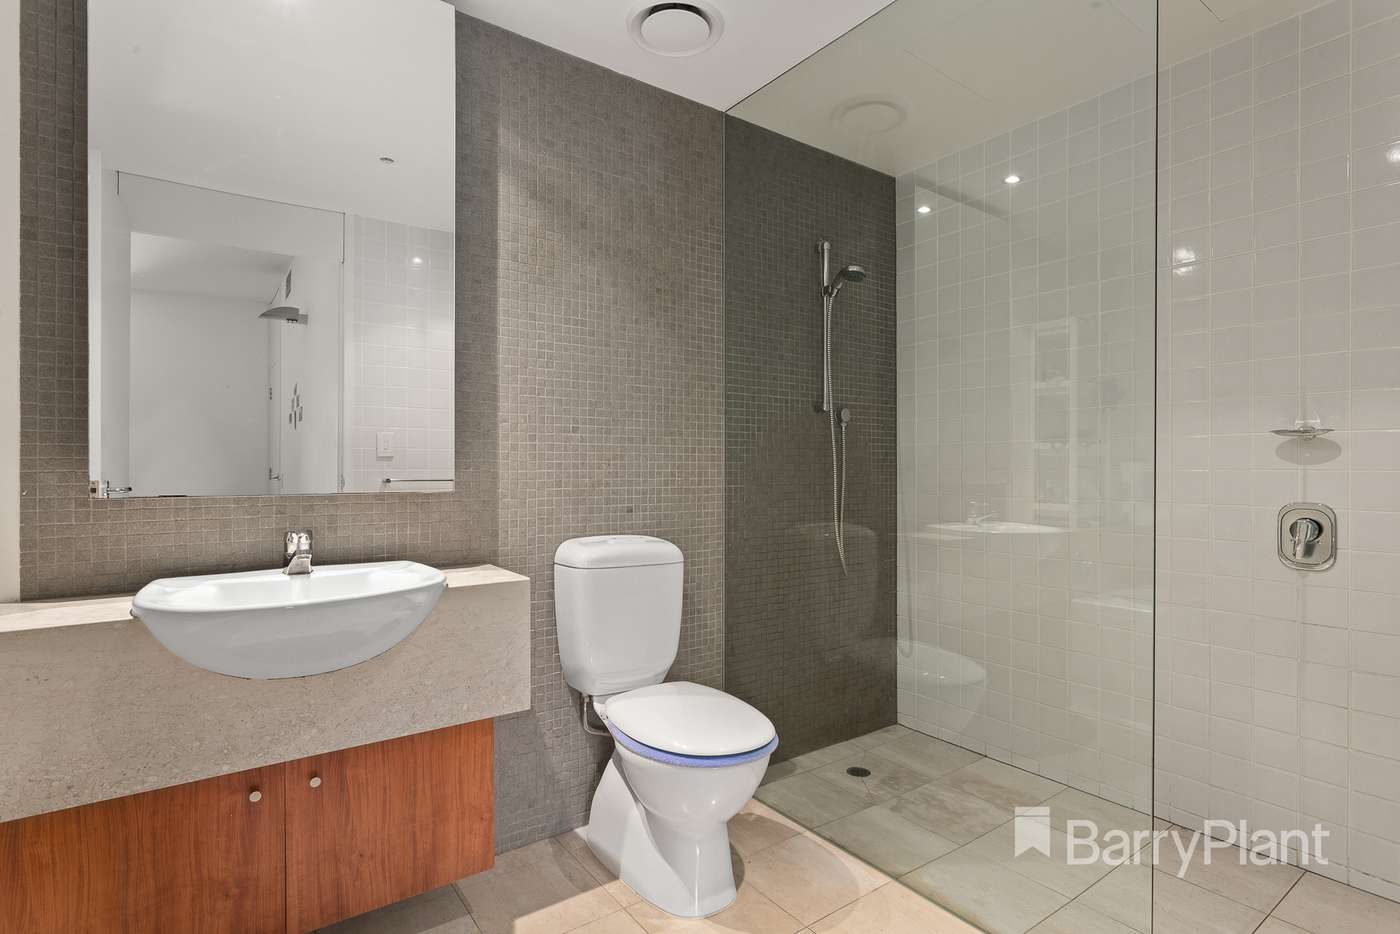 Fifth view of Homely apartment listing, 202/668 Swanston Street, Carlton VIC 3053